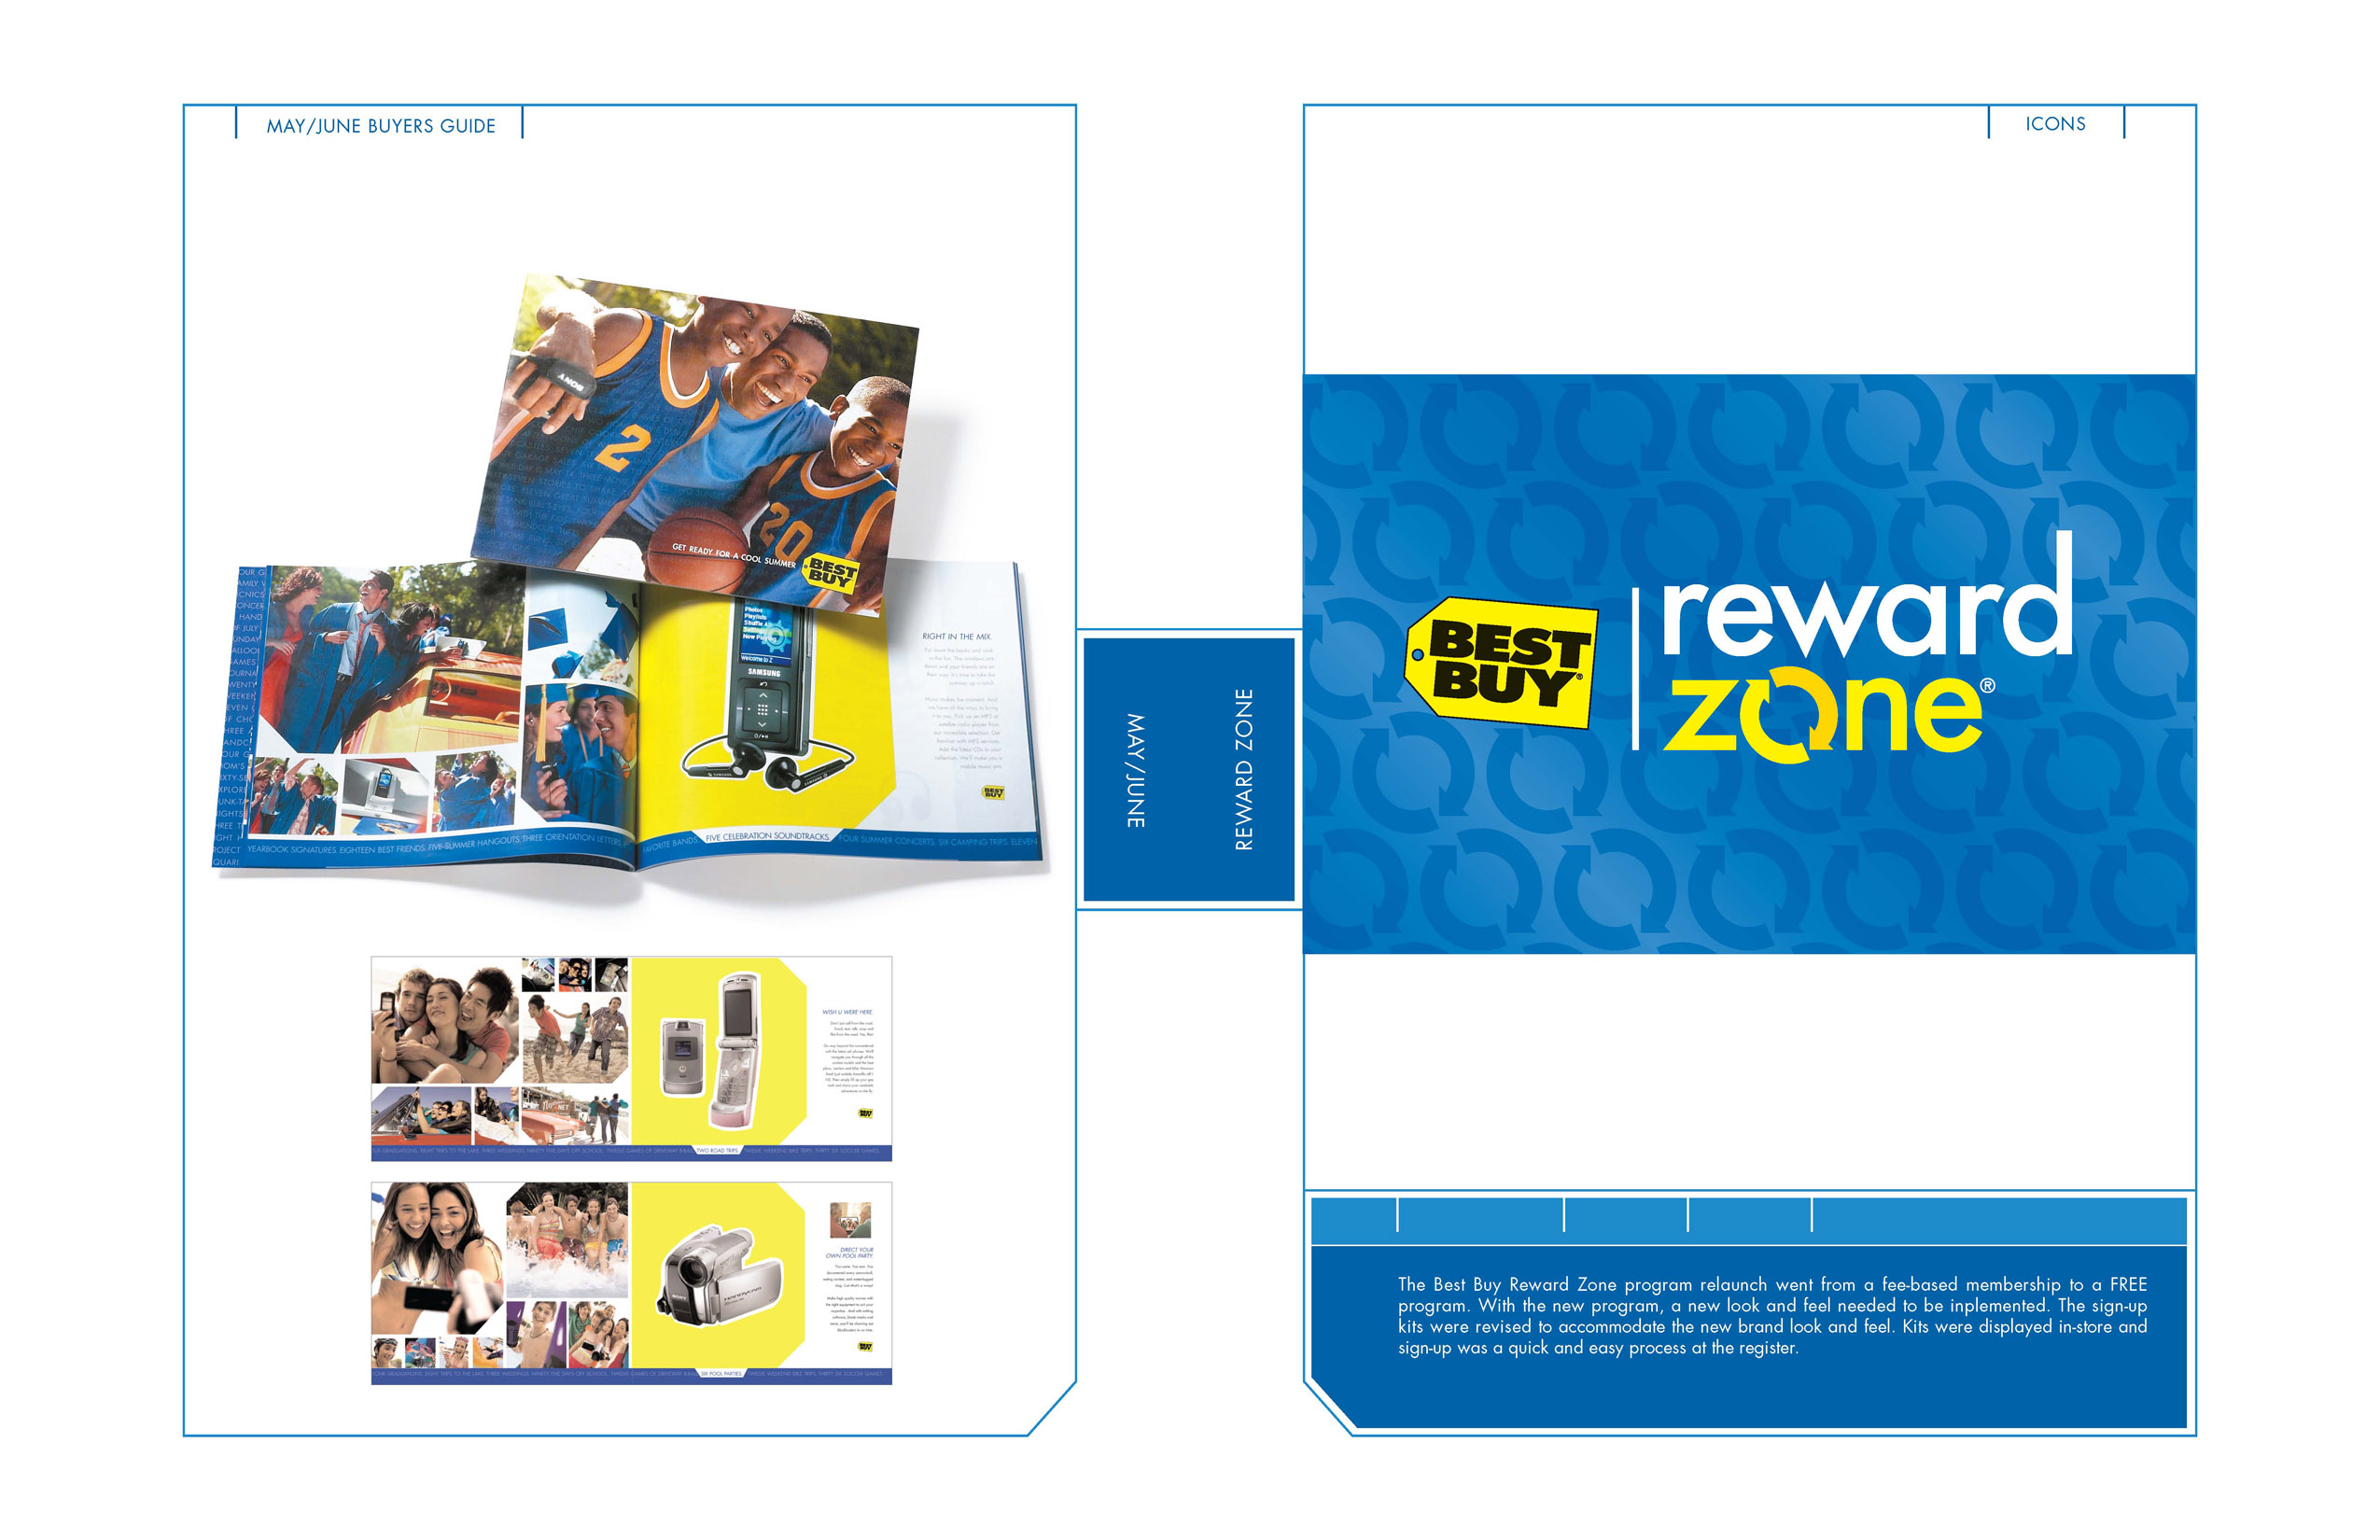 Best Buy Reward Zone Certificates Coupons Food Shopping